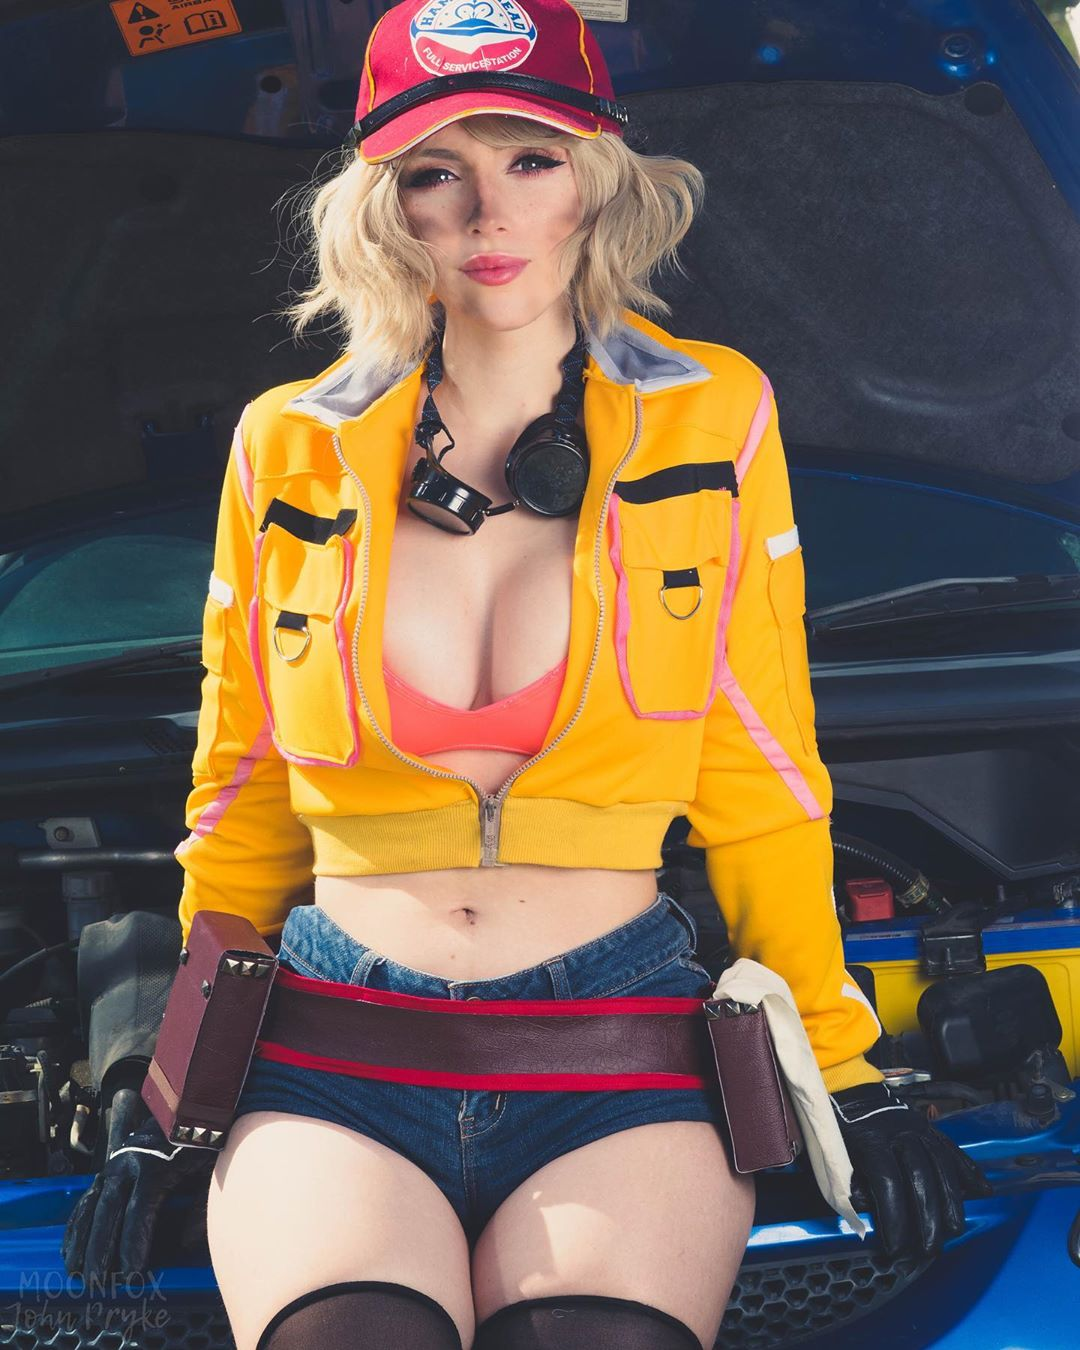 Cindy Cosplay by Katyuska Moonfox